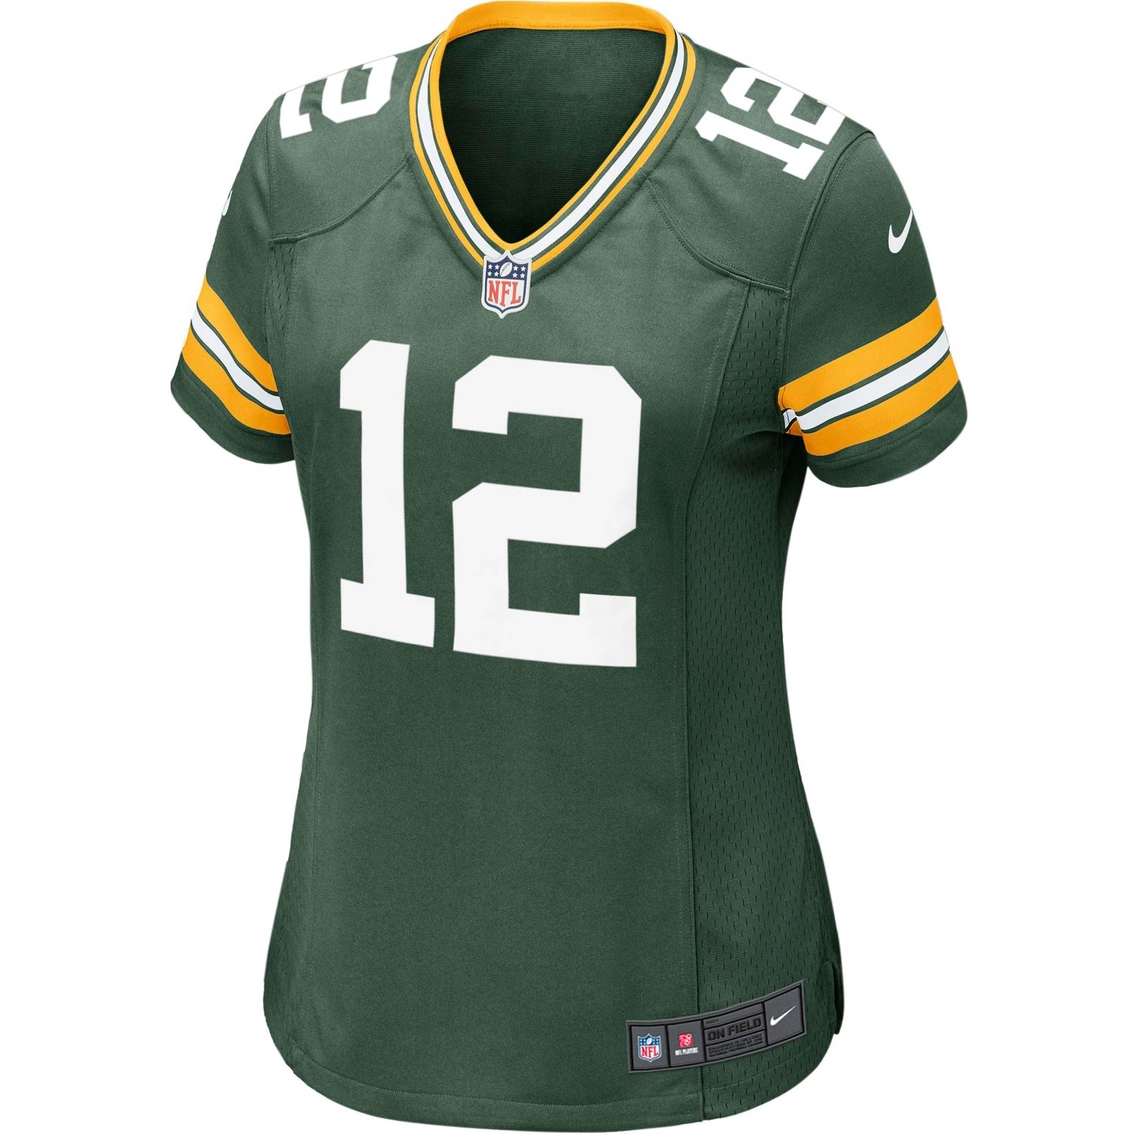 Nike Nfl Green Bay Packers Women S Aaron Rodgers Jersey